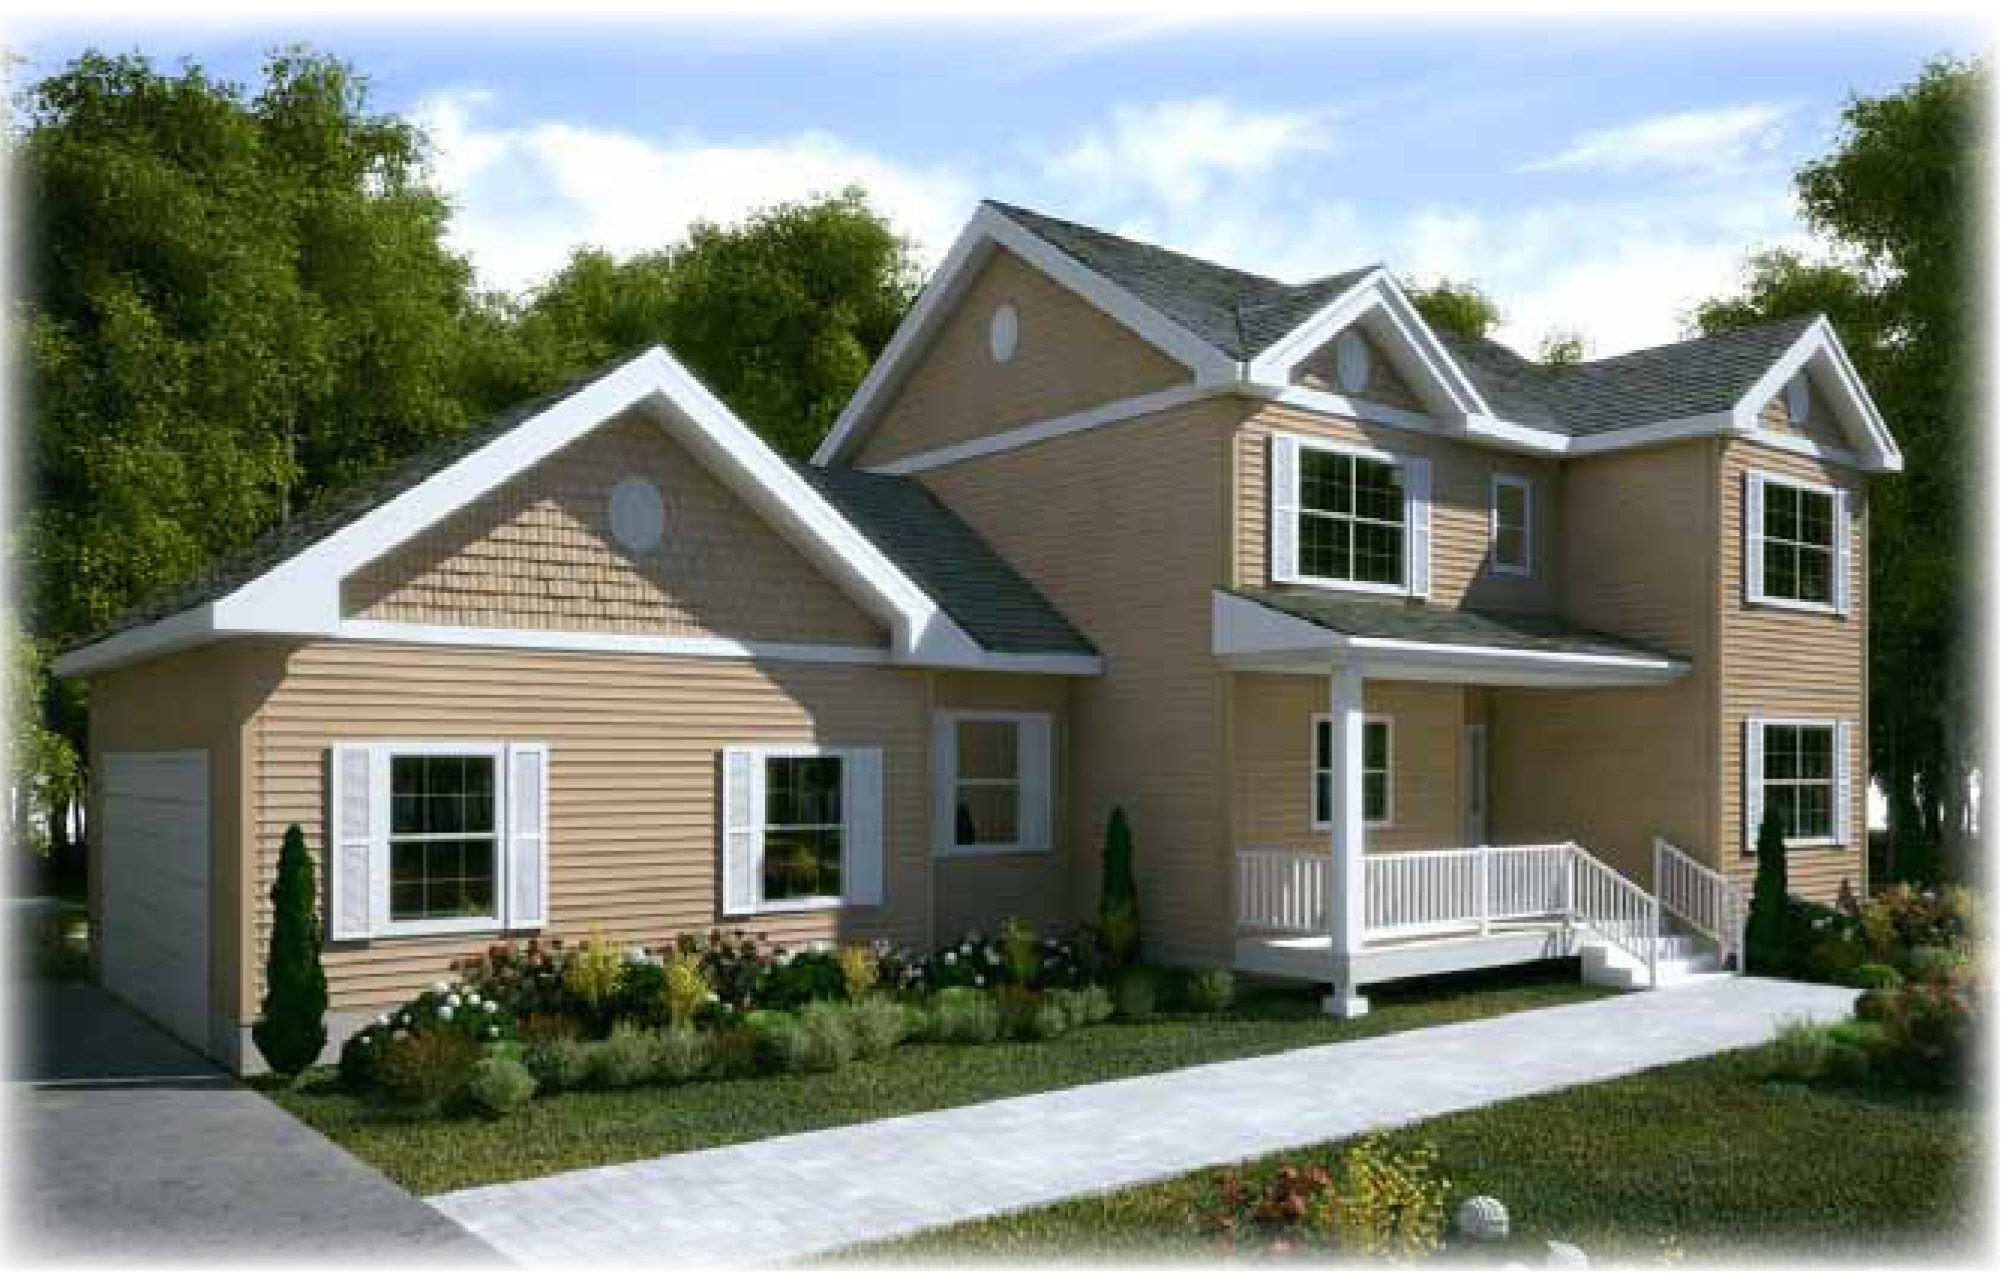 exterior of a home built by blitman development corp